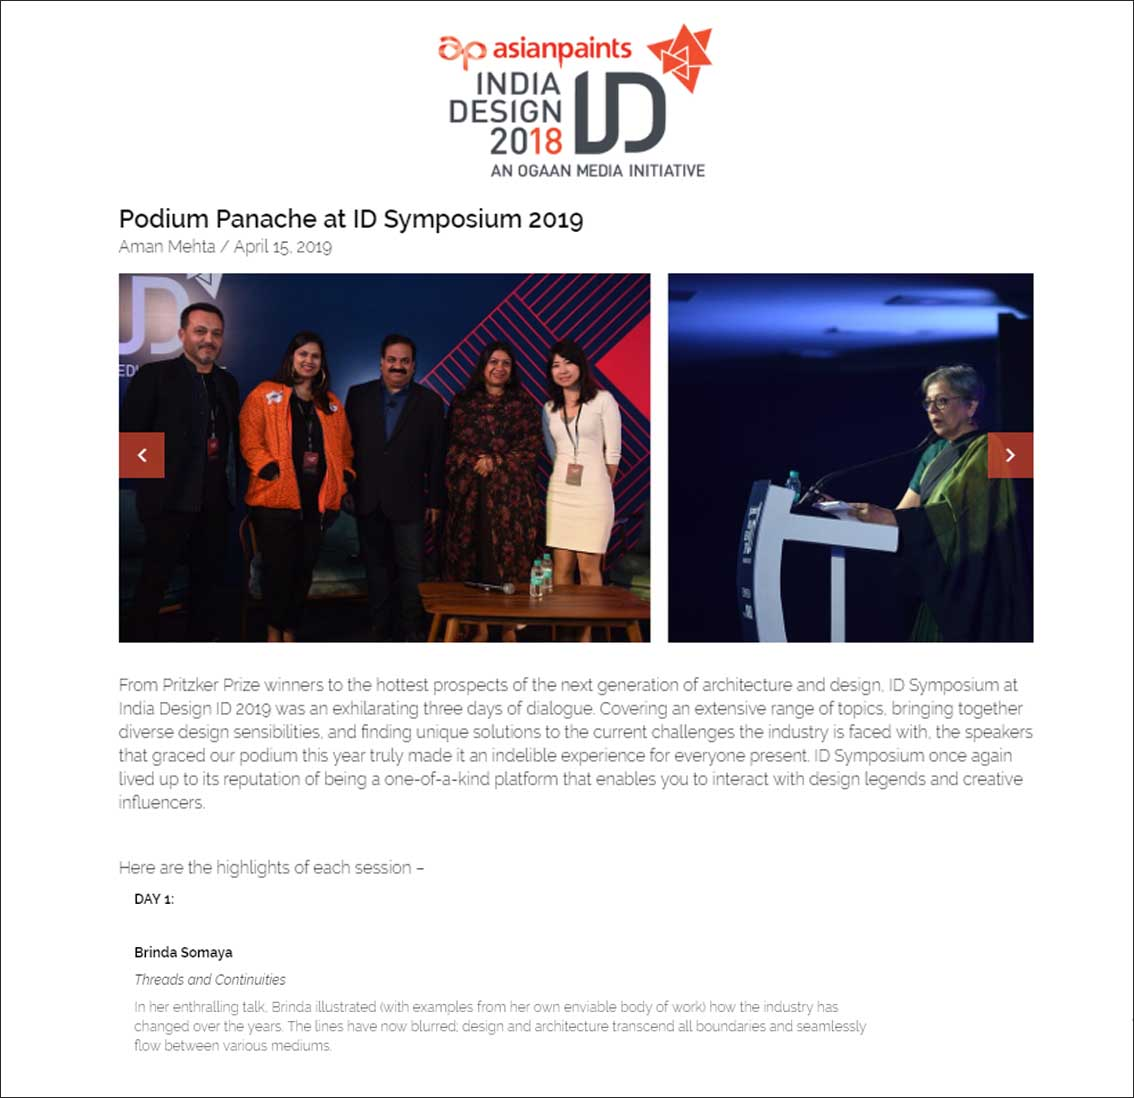 Podium Panache at ID Symposium 2018, India Design ID 2018 - April 2019